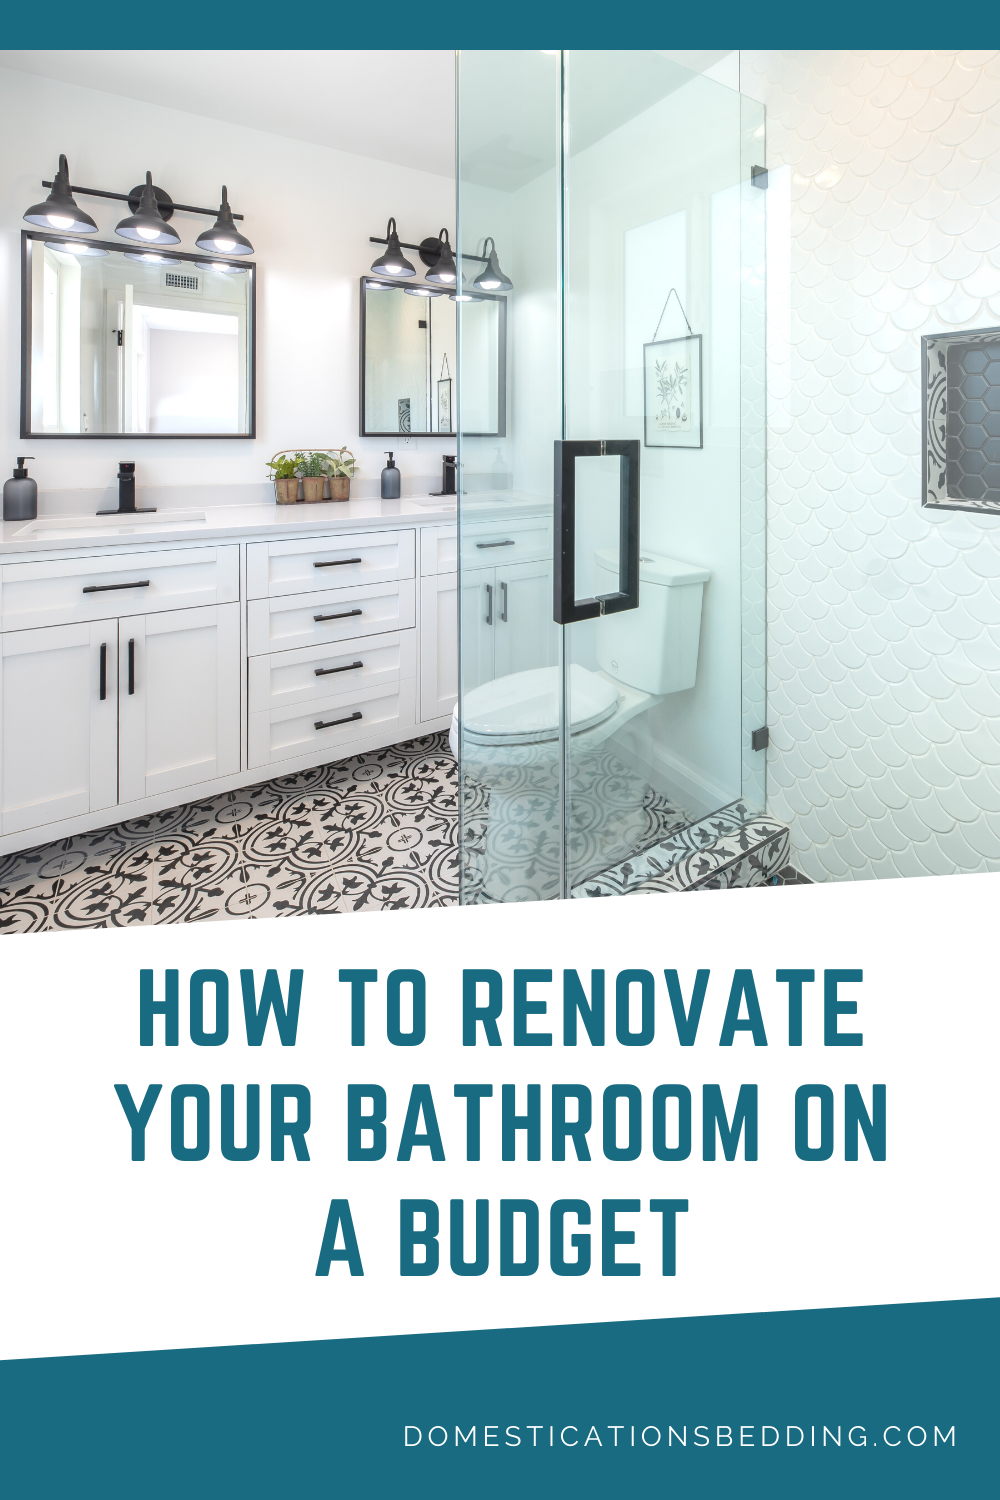 How To Renovate A Bathroom On A Budget In 2020 Budget Bathroom Small Bathroom Renovations Renovations